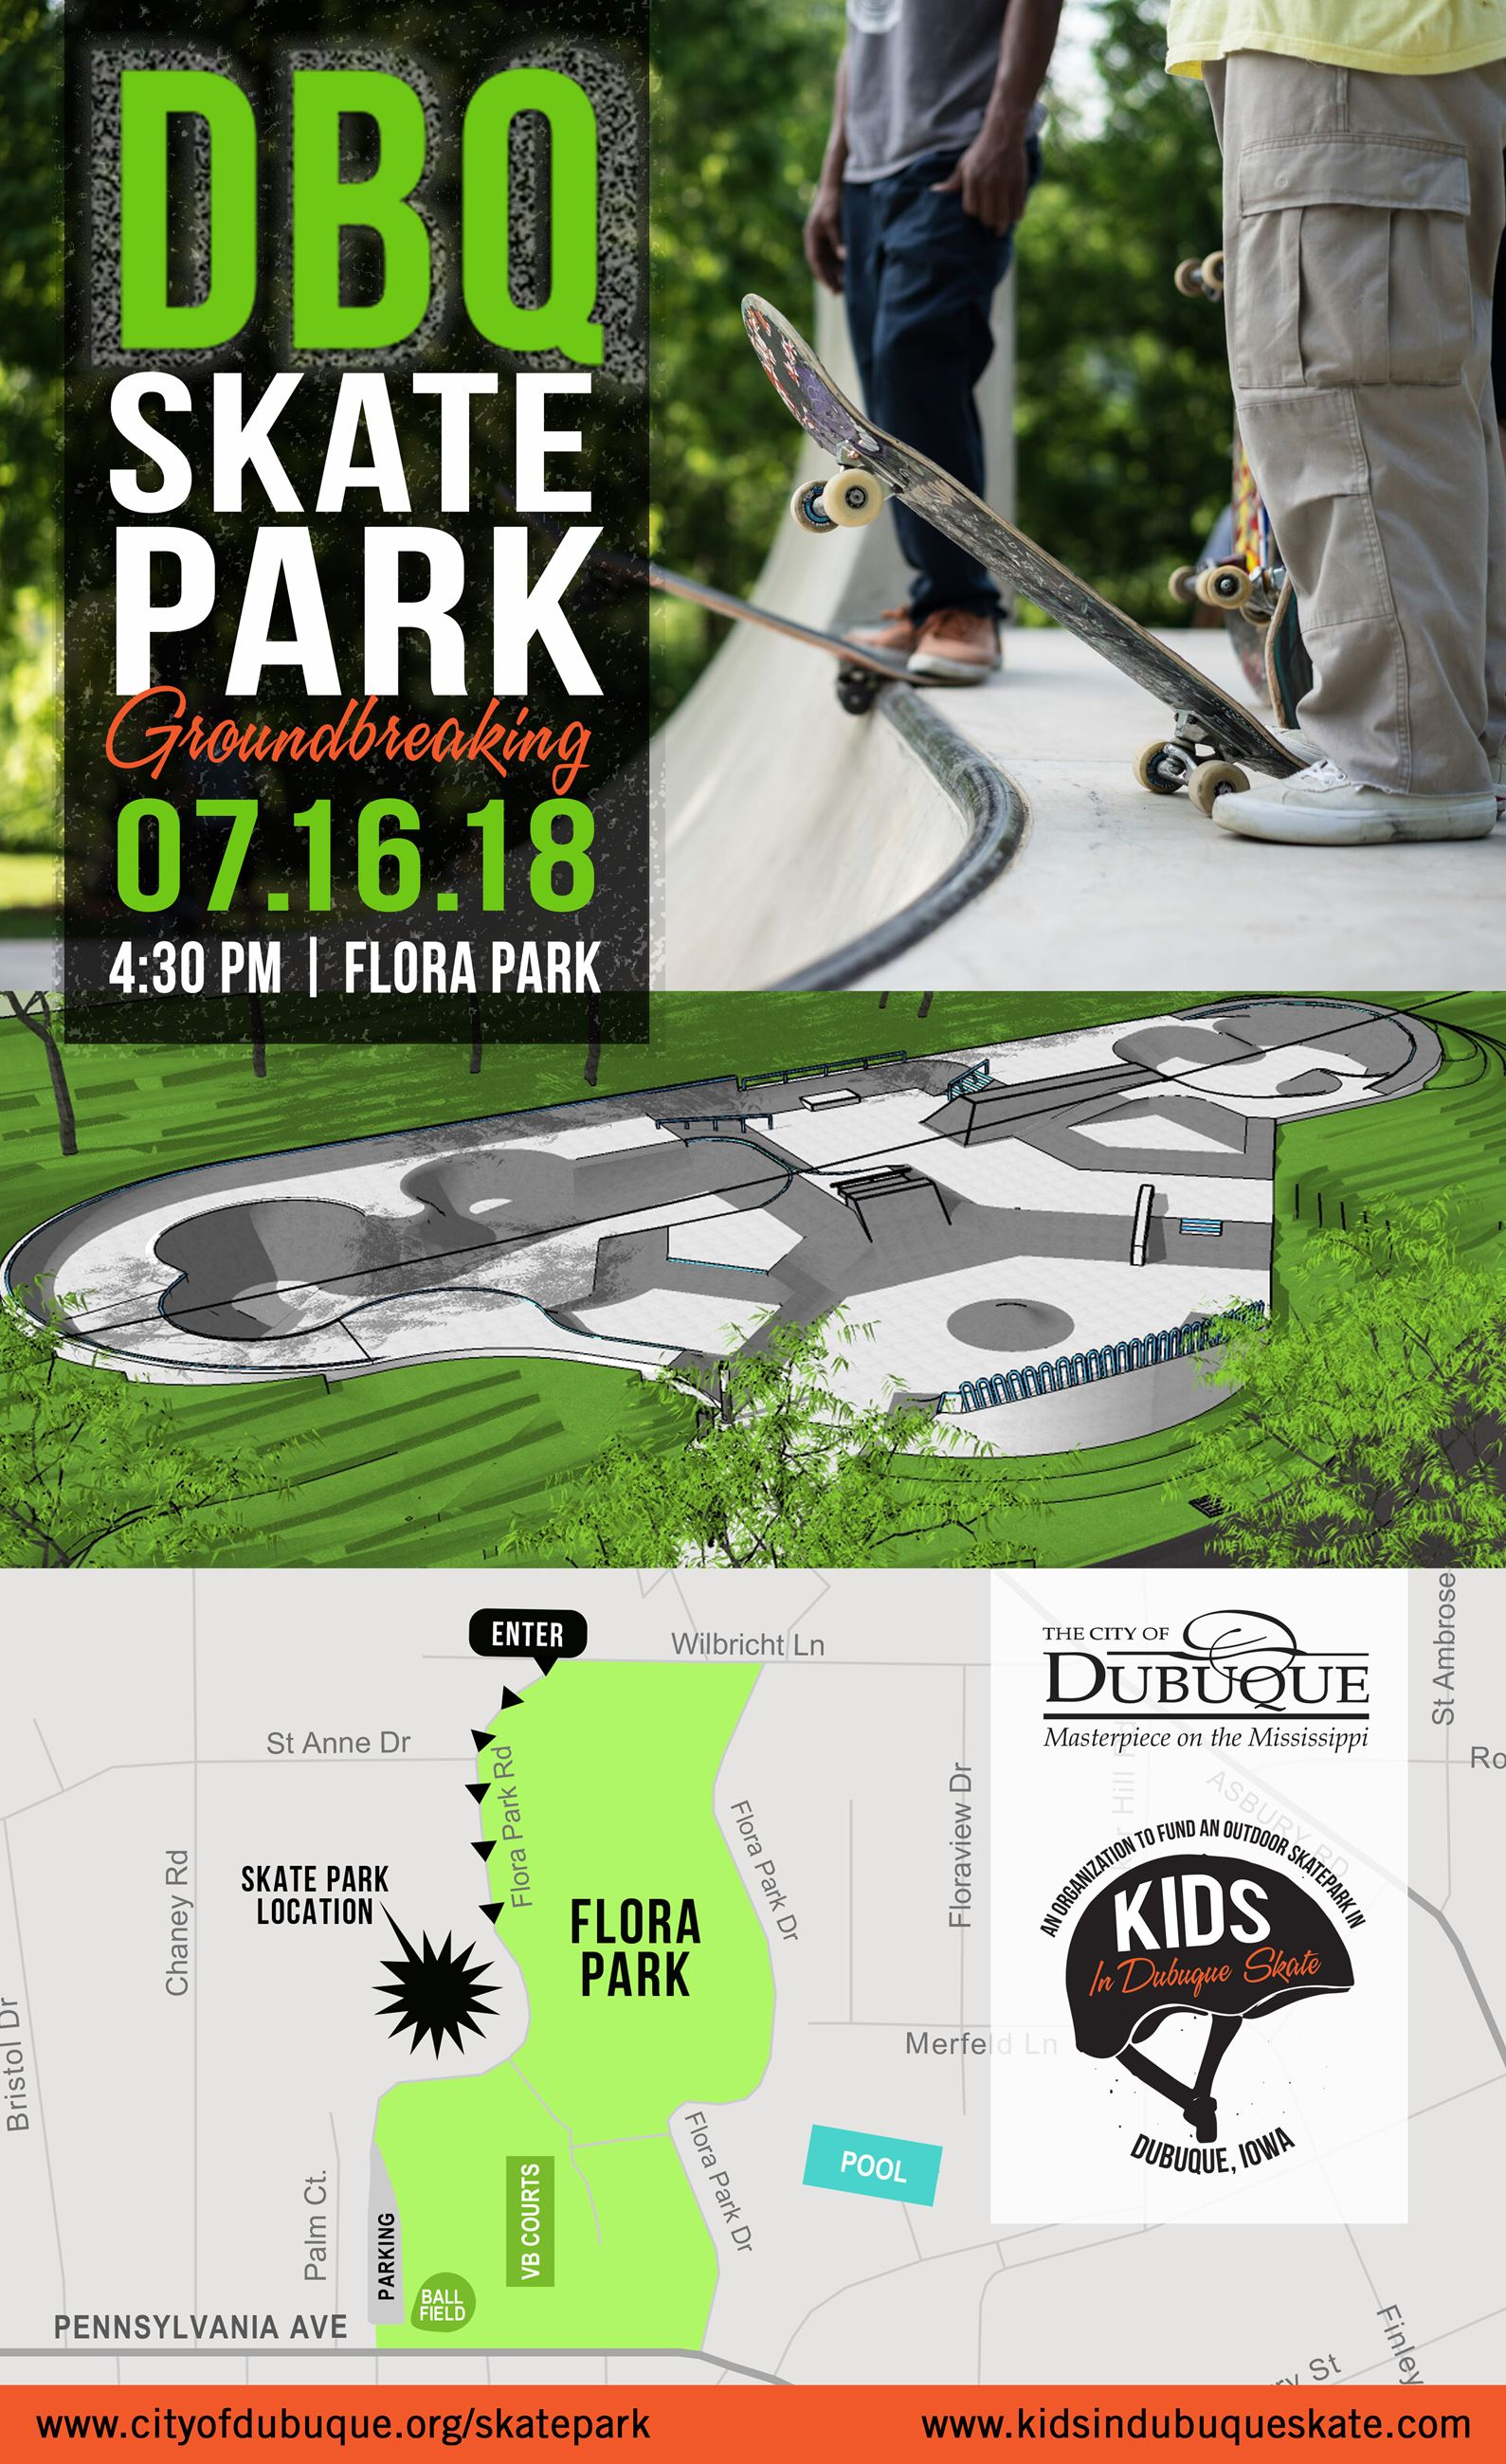 Skate Park Groundbreaking Invitation